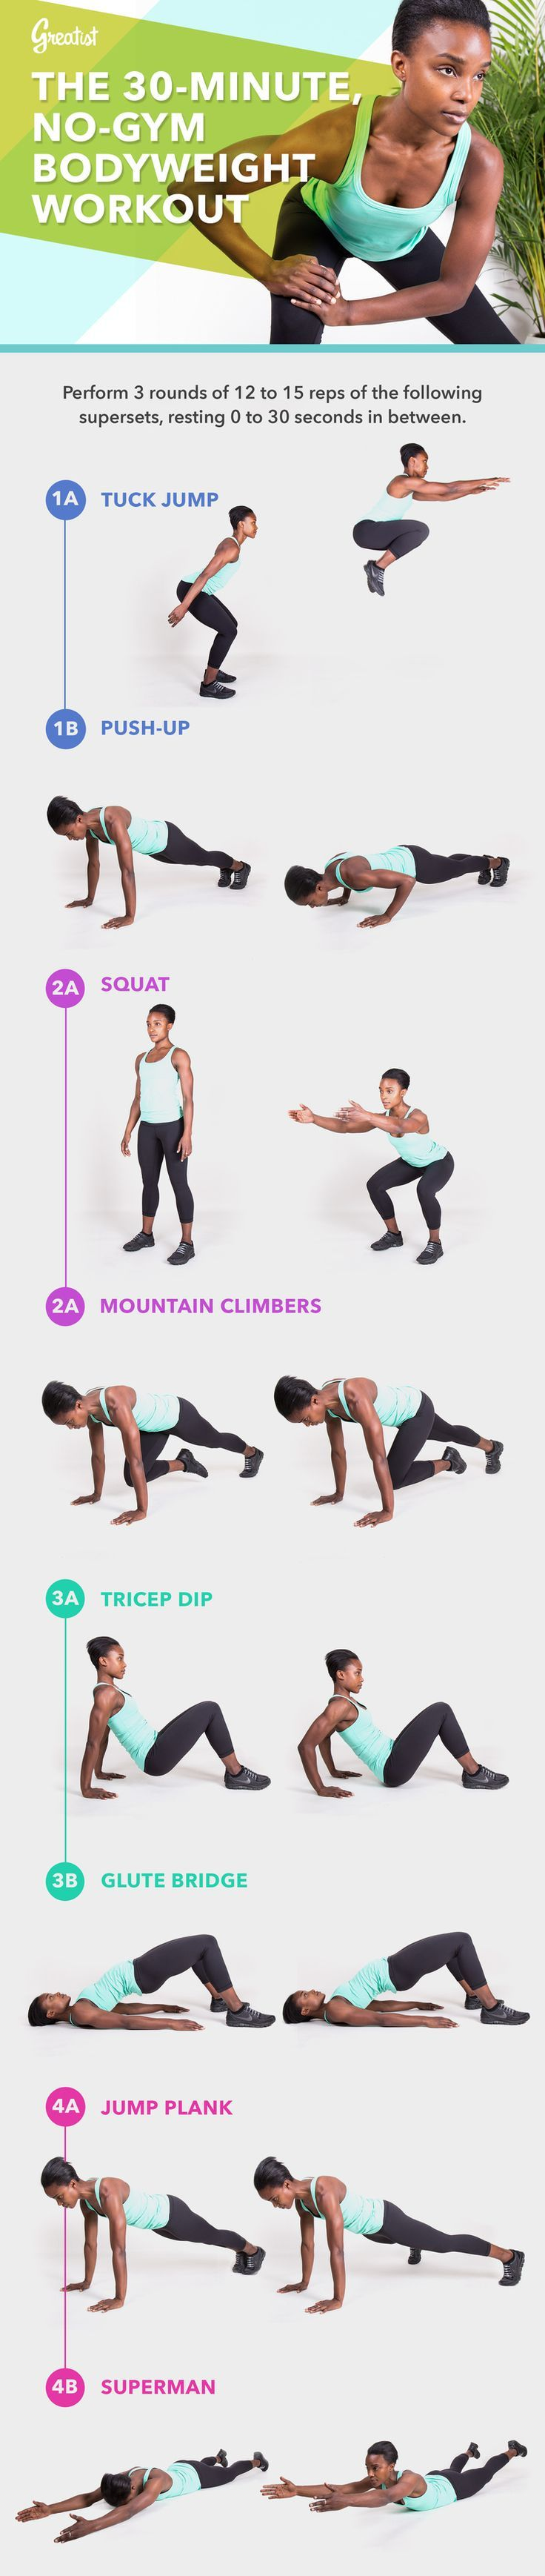 30 Minute No Gym Bodyweight Workout Lakes Mom And Graphics